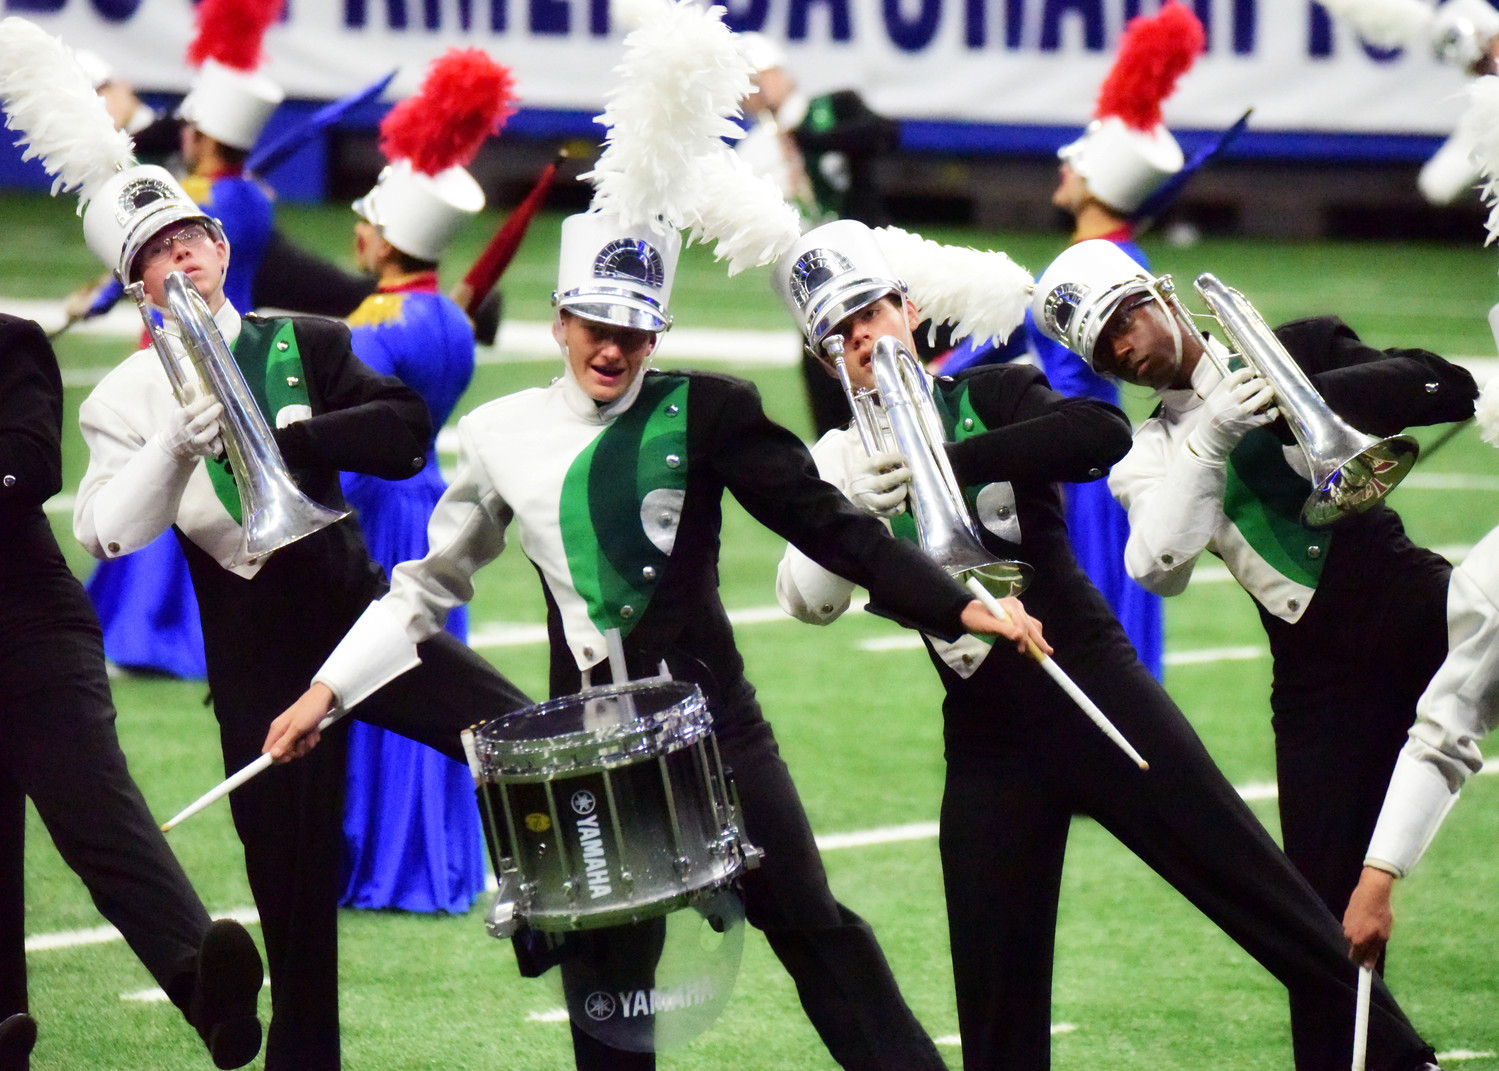 The Cedar Park High School marching band performs The Steadfast Tin Soldier during the UIL State Marching Band Competition at the Alamodome, Nov. 8.